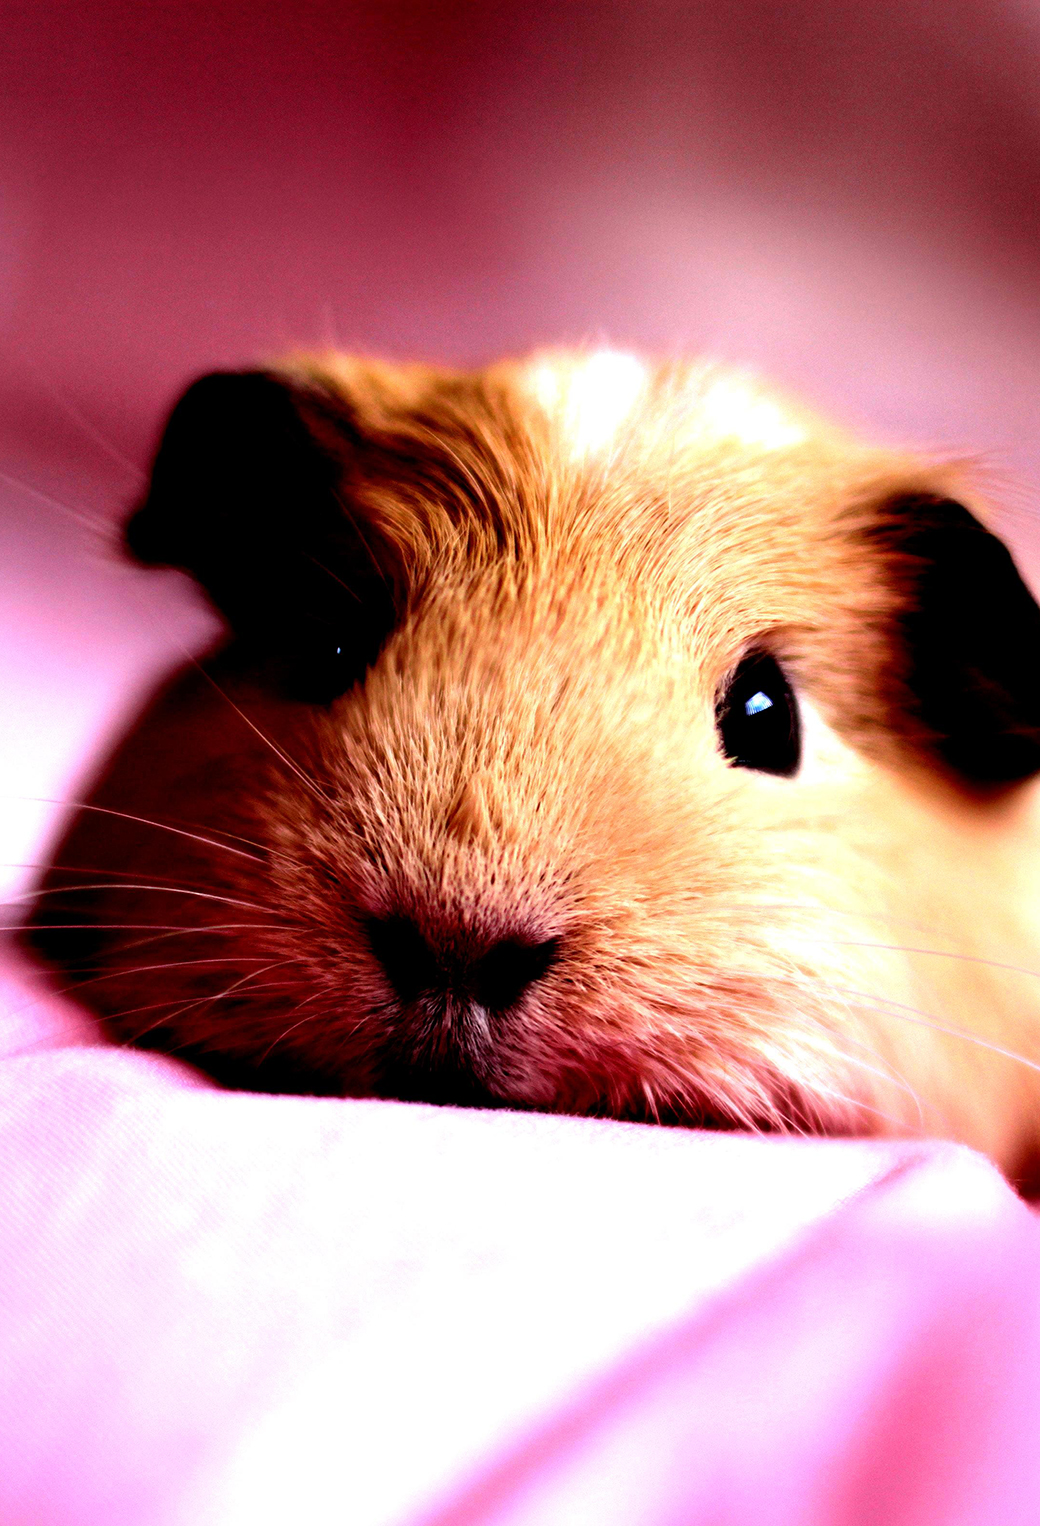 Guinea Pigs Pets 3Wallpapers iPhone Parallax Guinea Pigs Pets